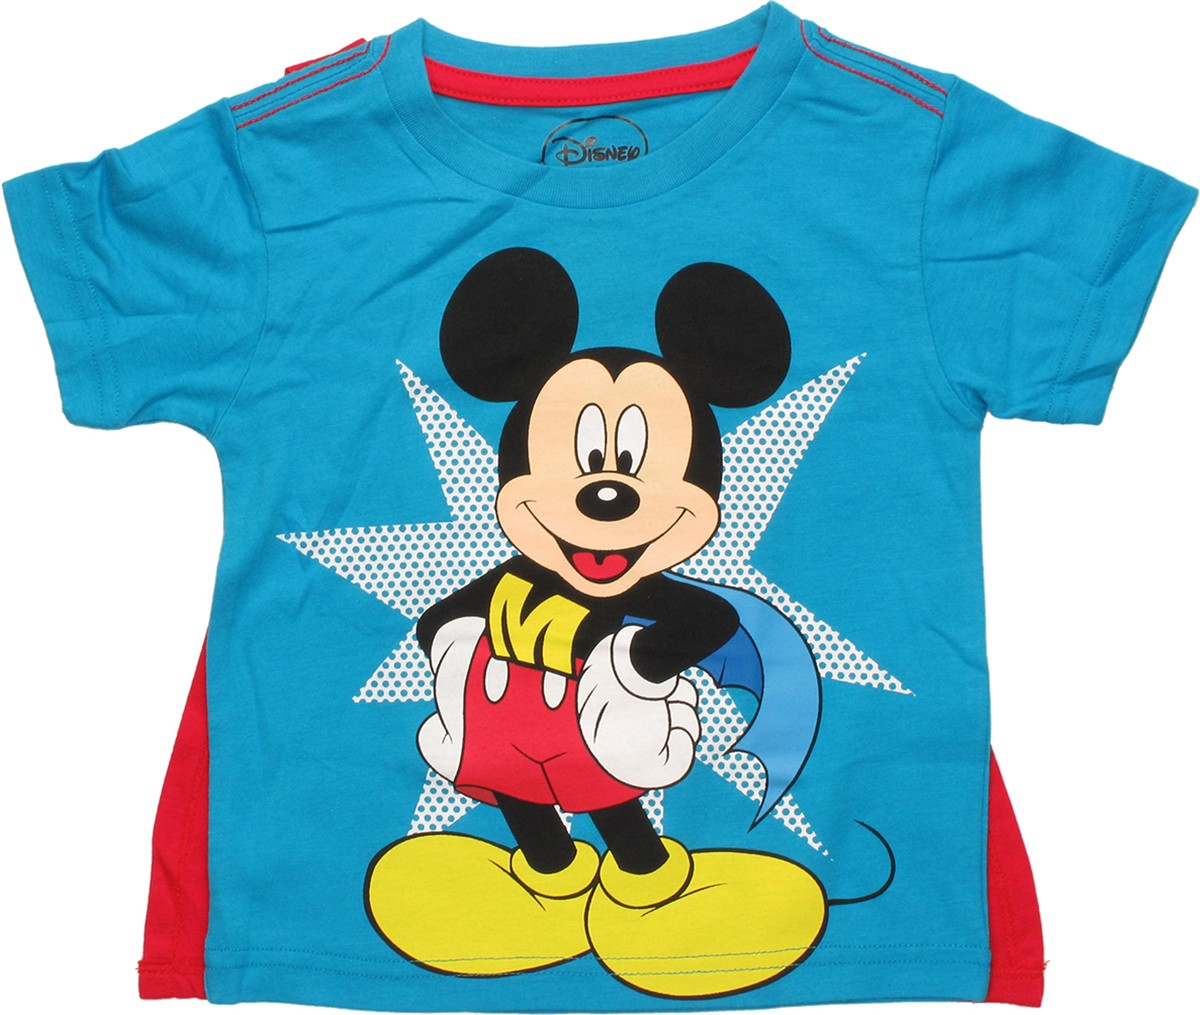 mickey mouse mickey mouse super mickey caped toddler t shirt. Black Bedroom Furniture Sets. Home Design Ideas